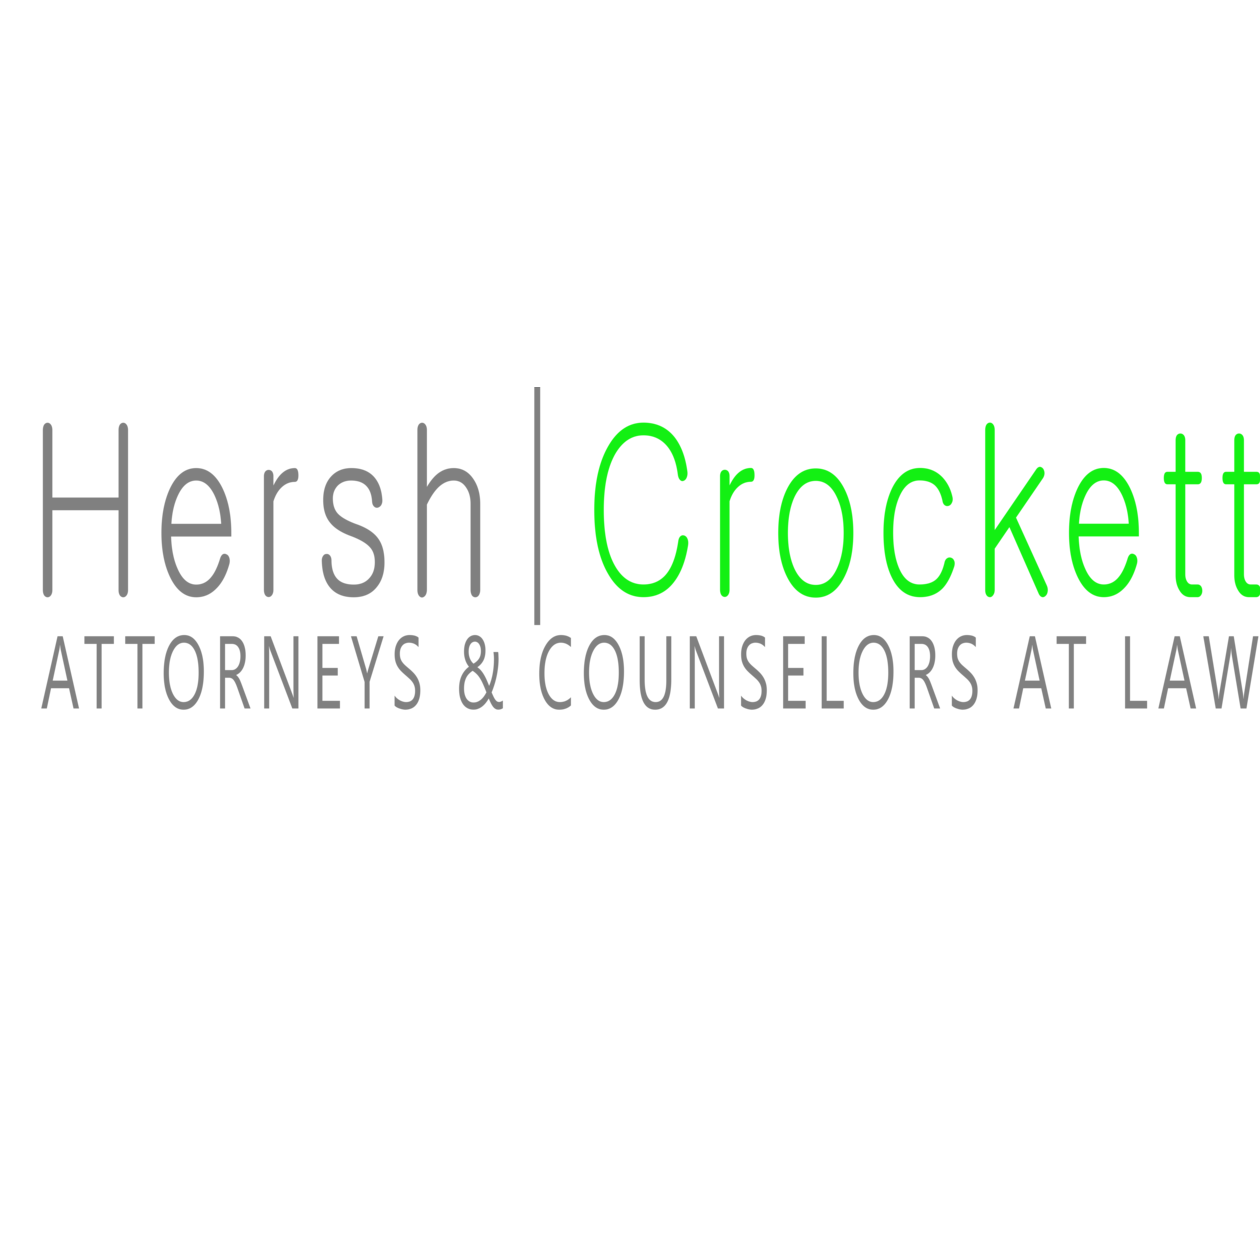 Hersh | Crockett Attorneys & Counselors at Law